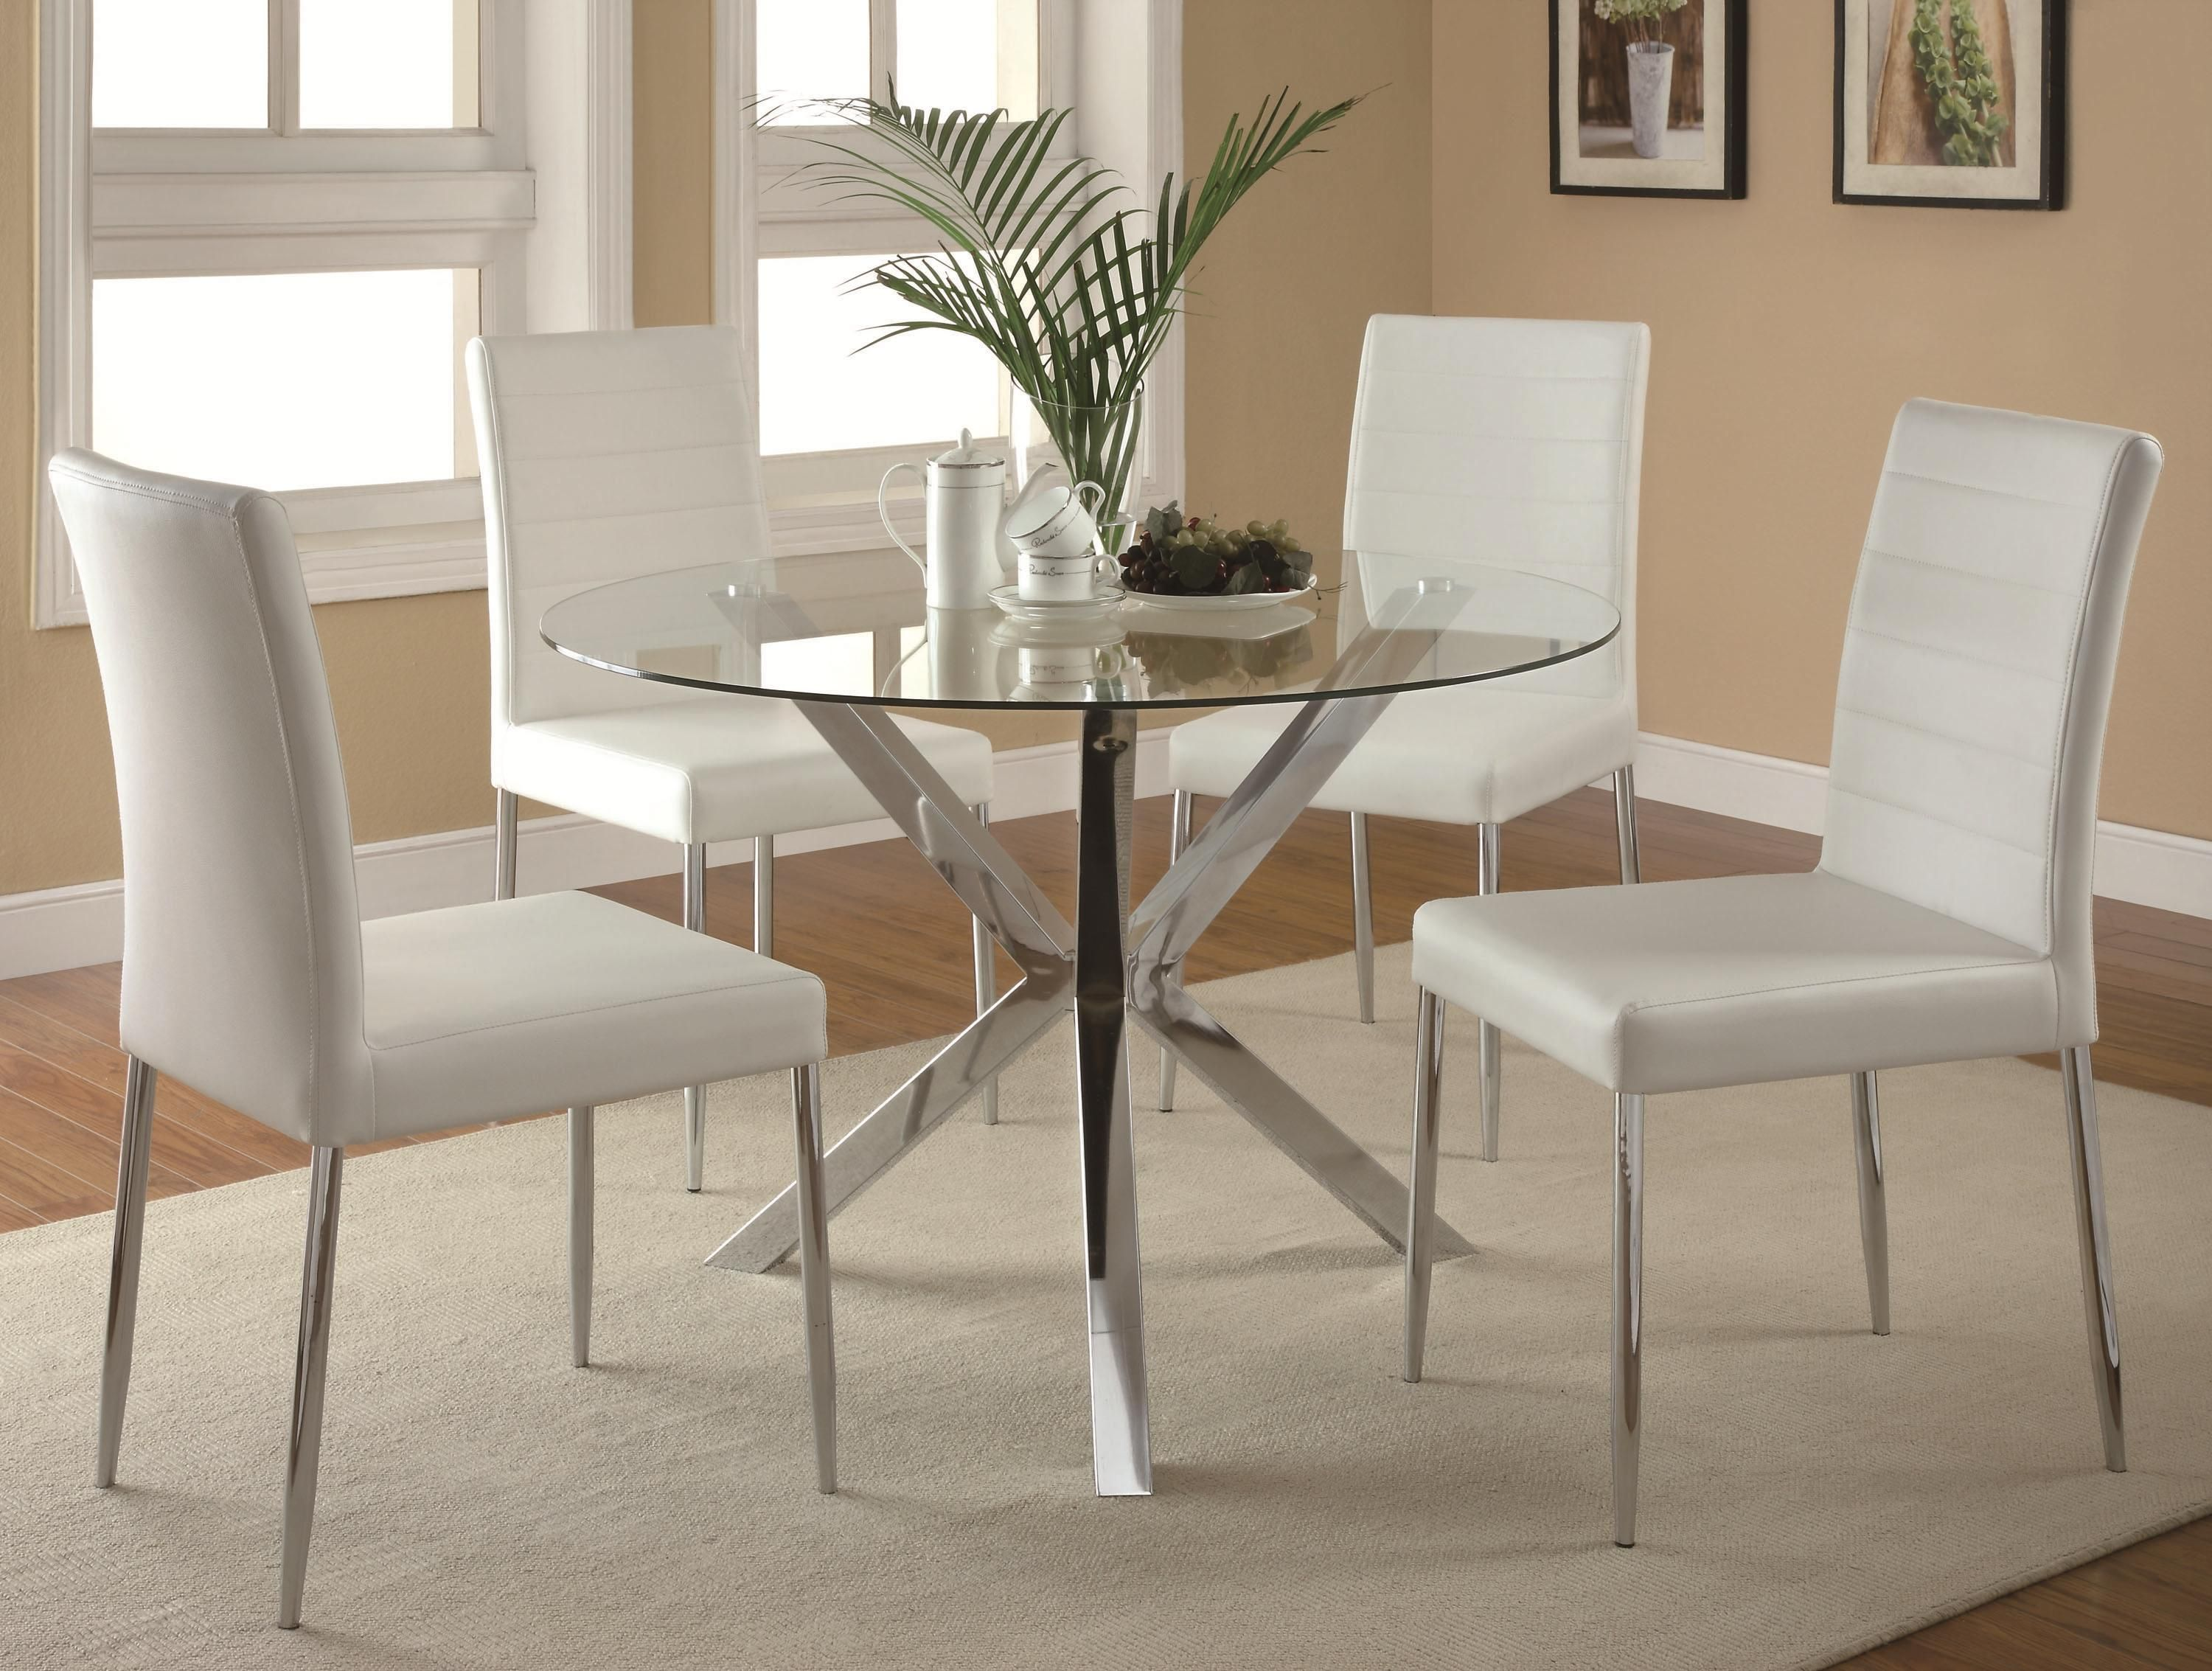 Coaster Vance Contemporary Dining Chair With White Vinyl Seat Cushion Fine Furniture